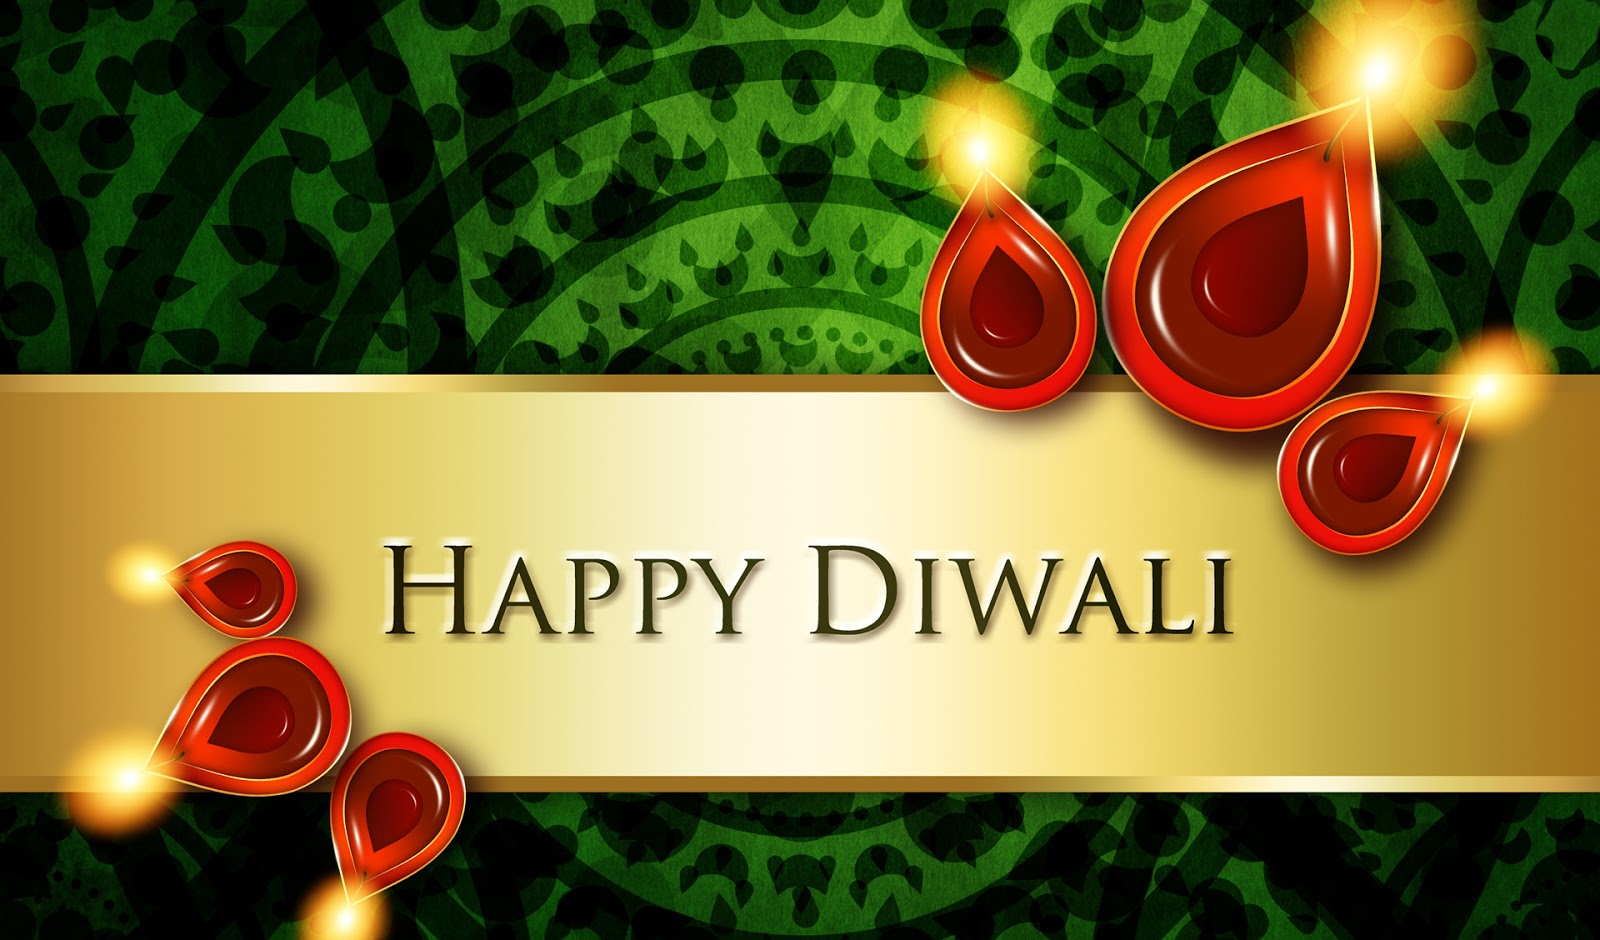 Top 20 Happy Diwali 2017 Wallpapers And Images Pictures Hd Free